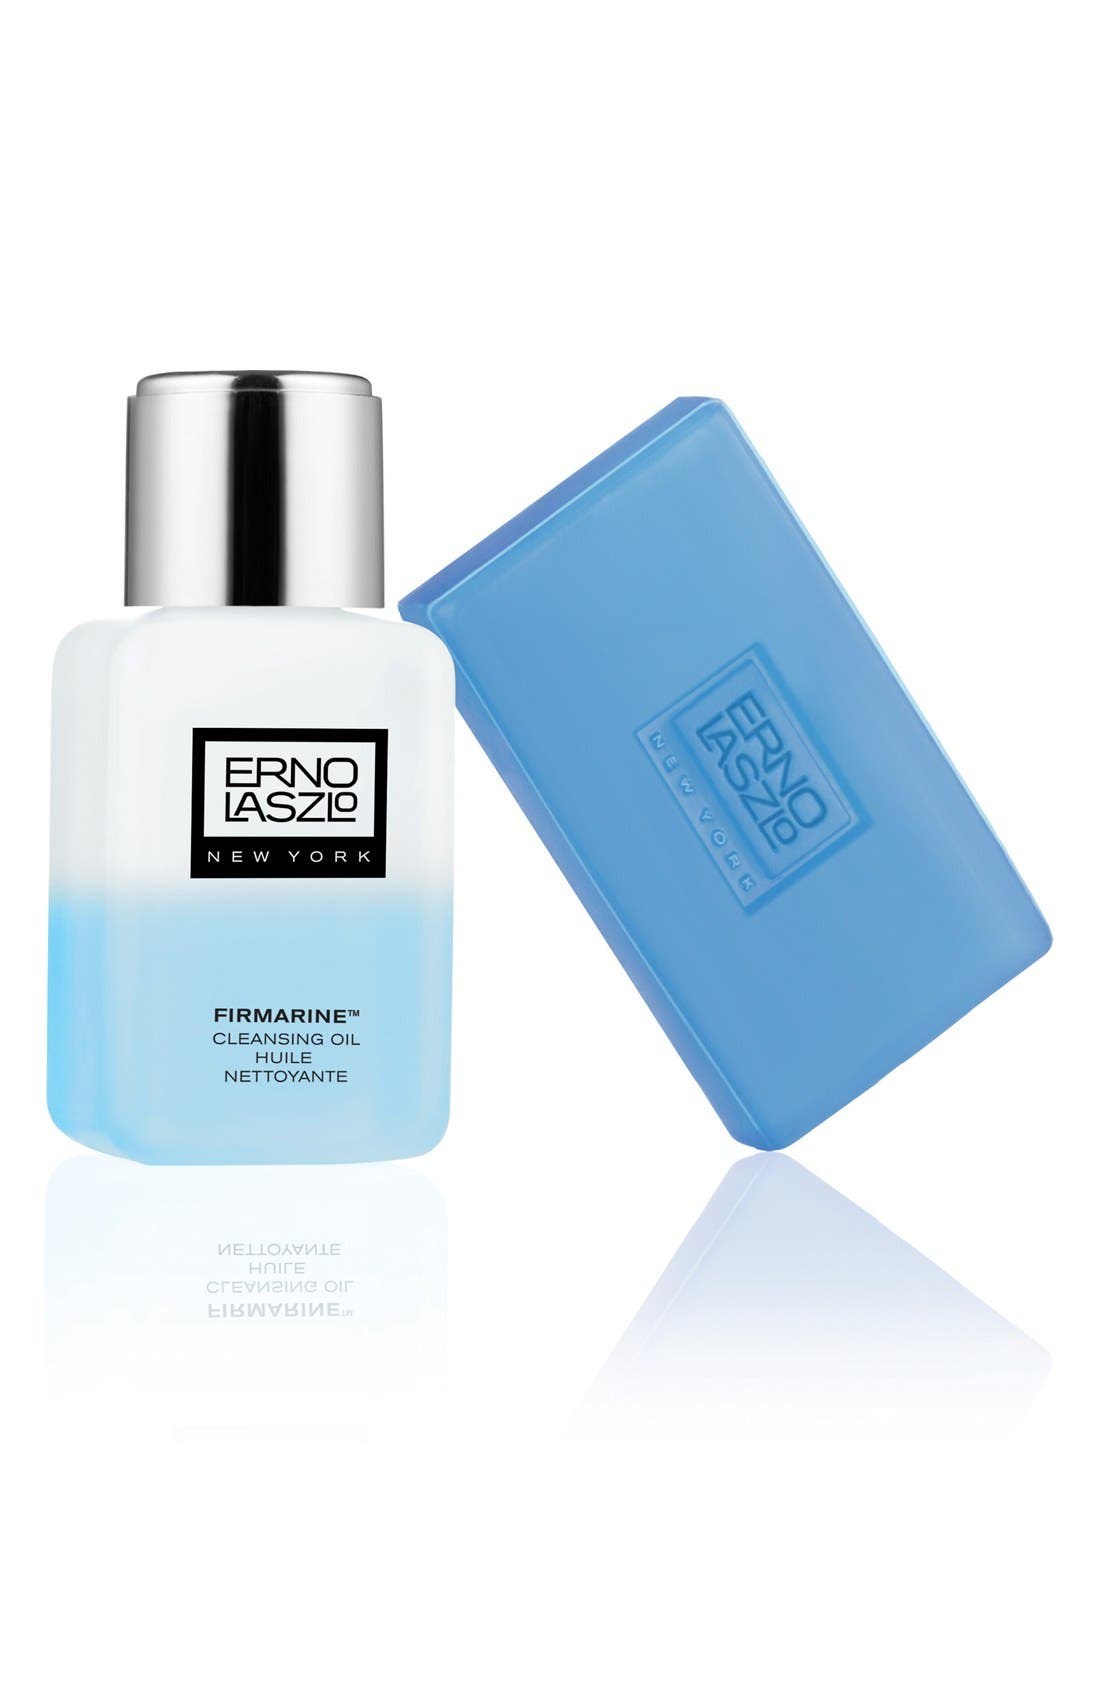 Firmarine Cleansing Set,                             Main thumbnail 1, color,                             000